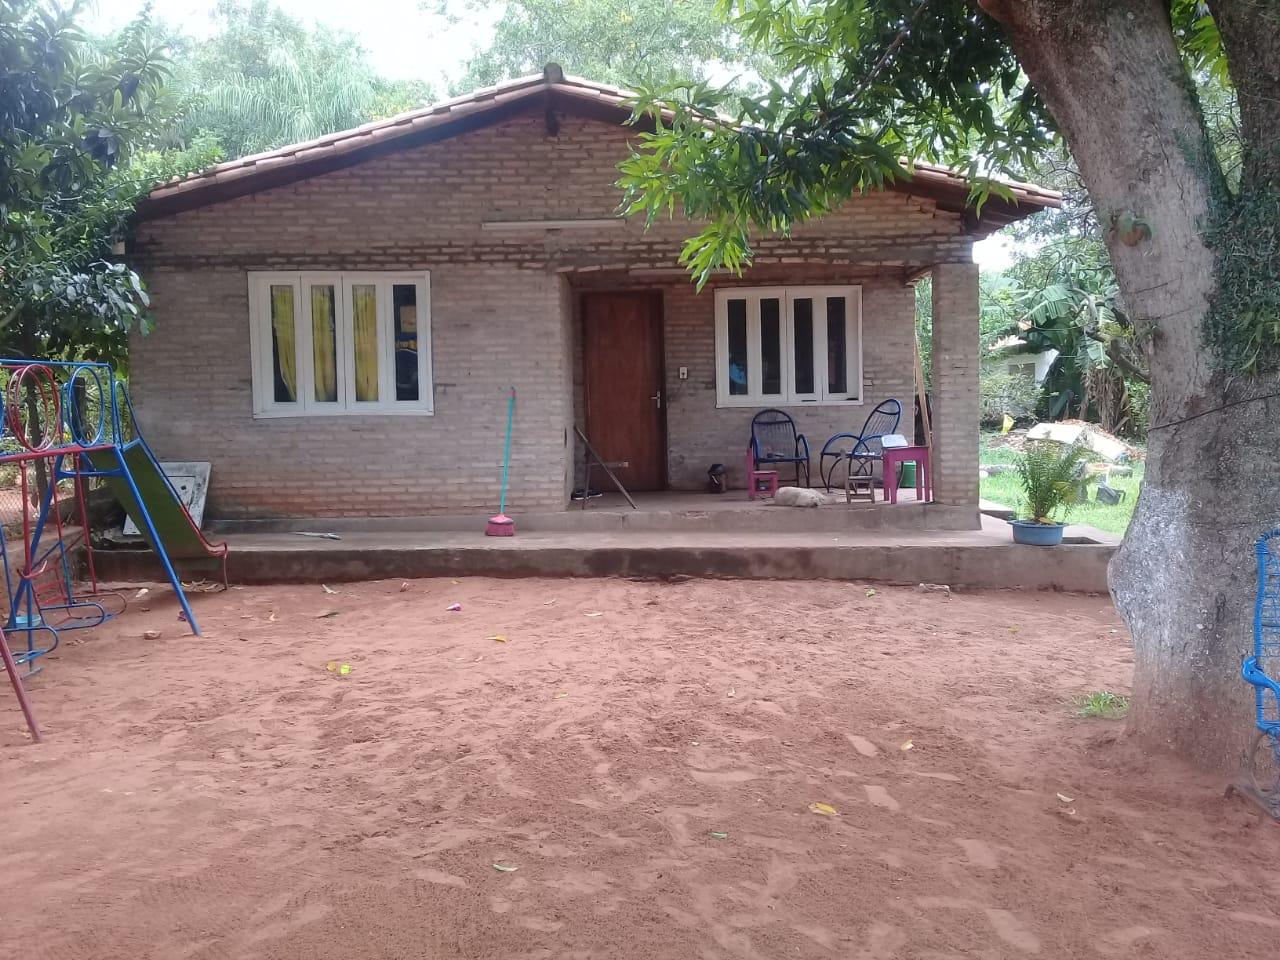 Vendo Casita Con Terreno En Luque Barrio Primavera